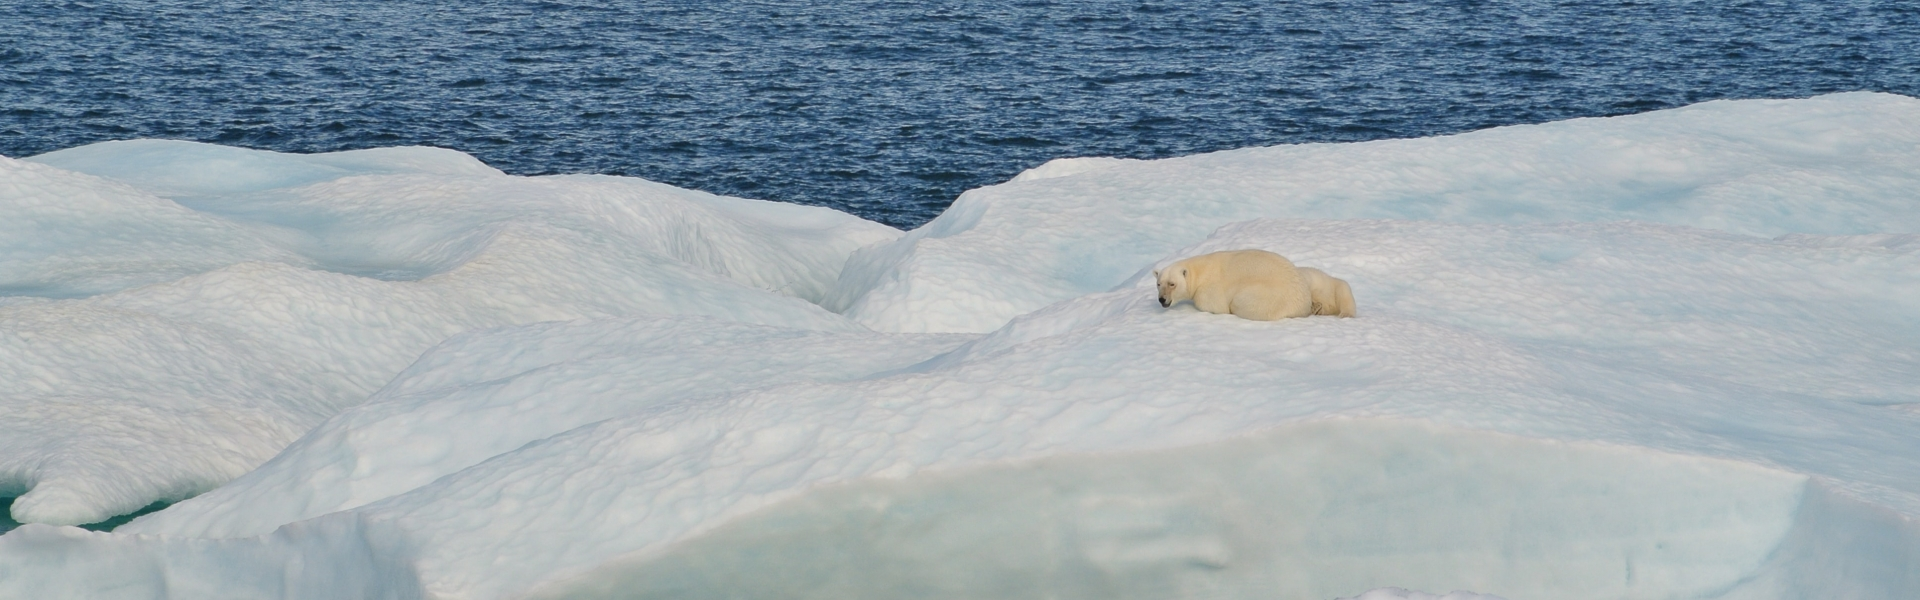 Polar bear rests on floating ice